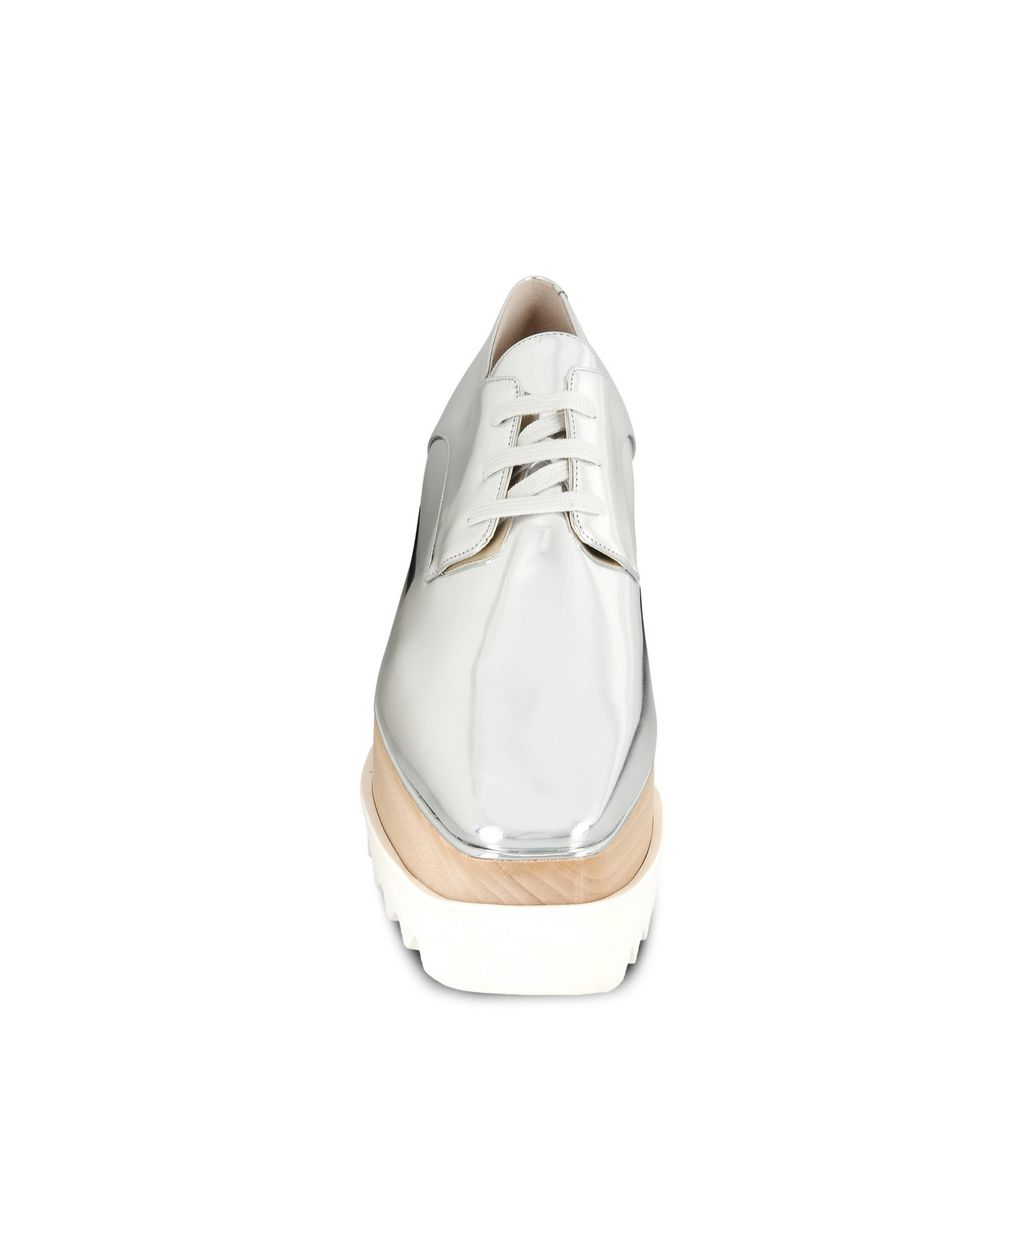 Silver Elyse Shoes - STELLA MCCARTNEY